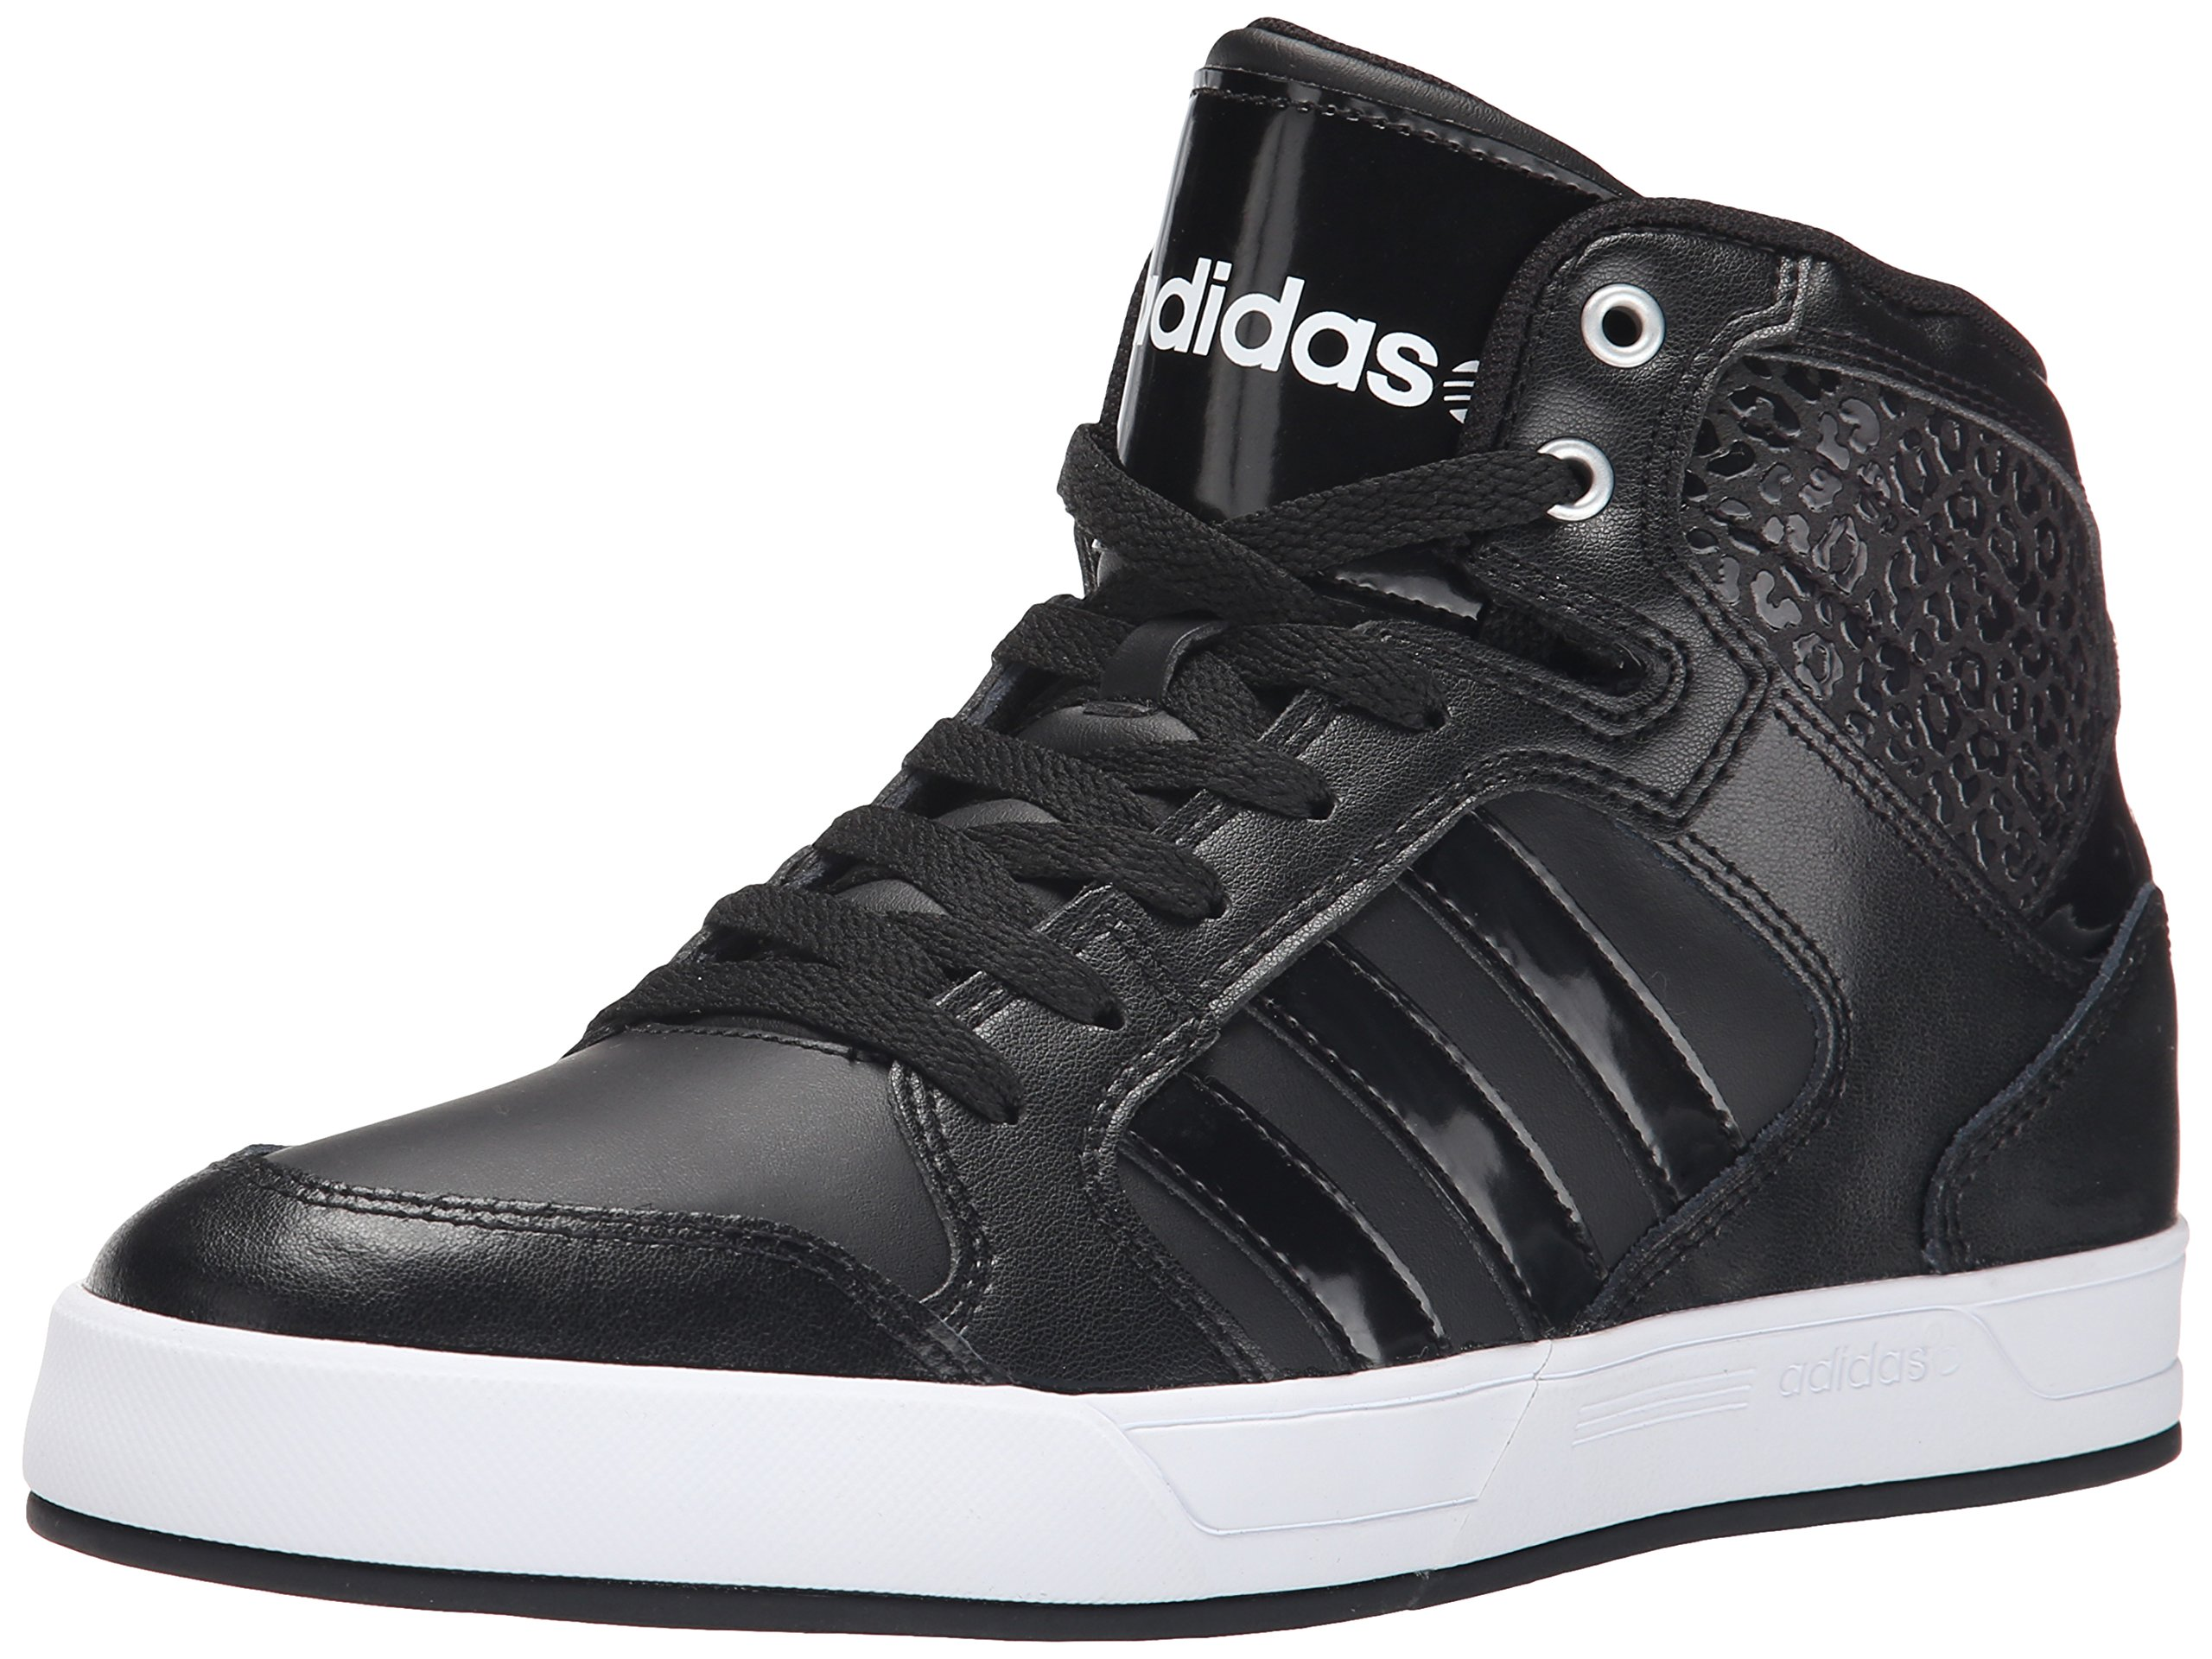 adidas basket shoes ladies